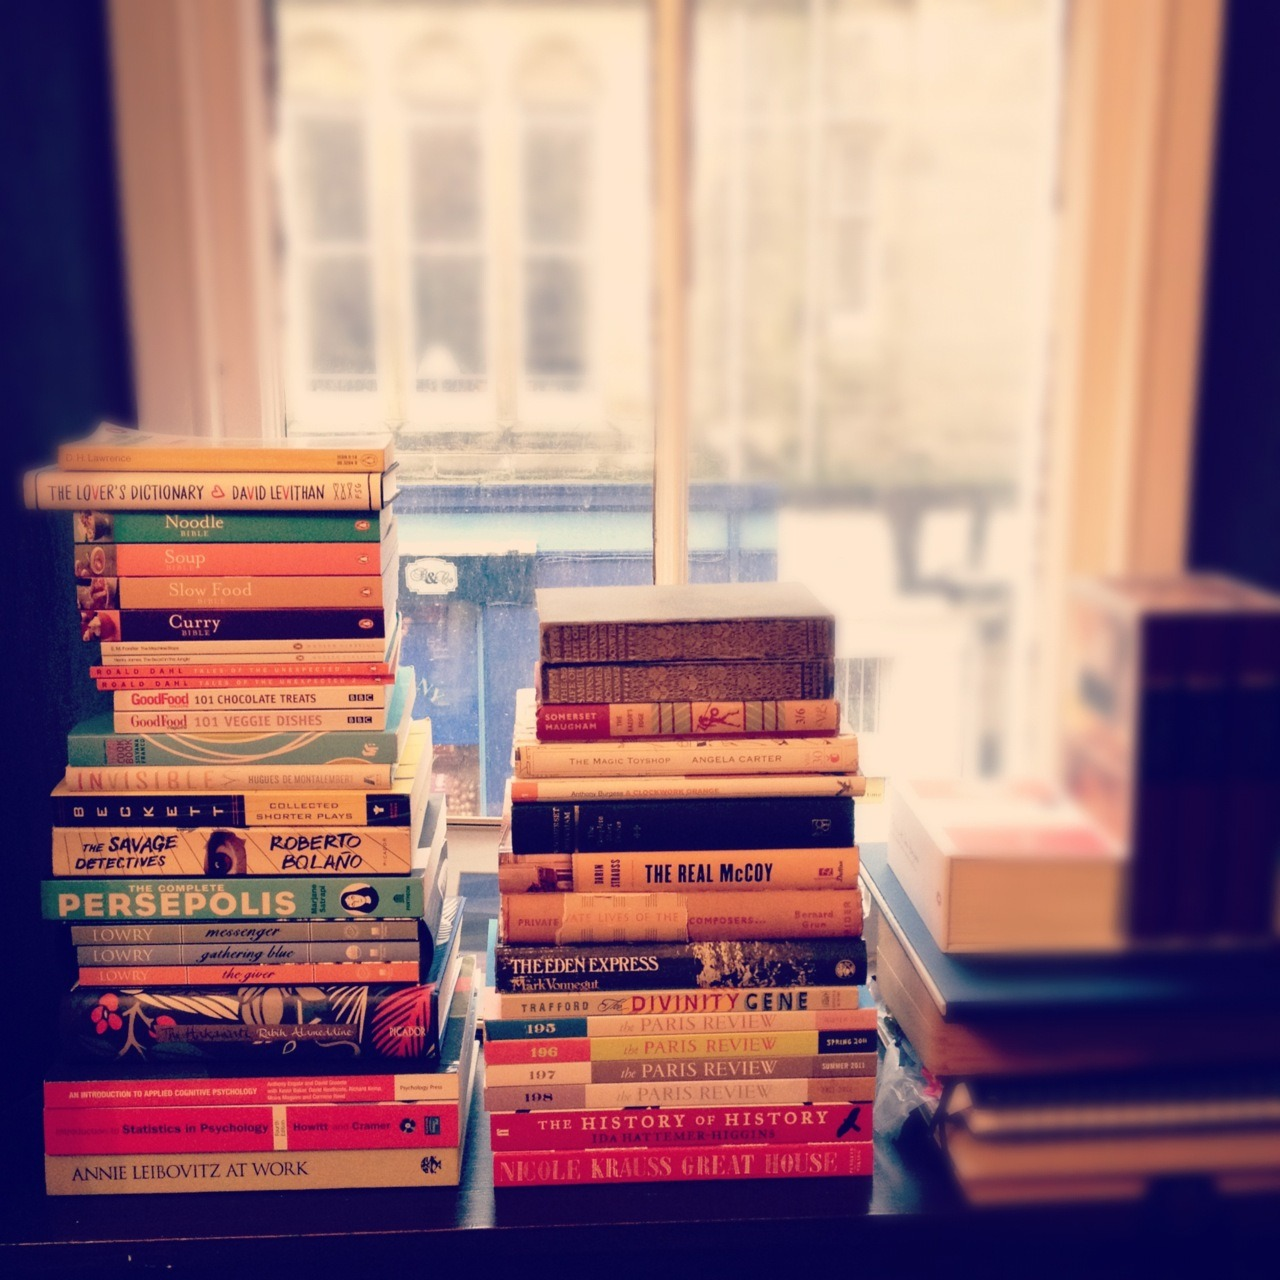 distantheartbeats:  More book piles! When I first moved into this flat I was excited about the window seats (seat is a generous term, they're not deep), and I imagined I'd perch on the edge and read. Alas! my books needed space, and they took it over.